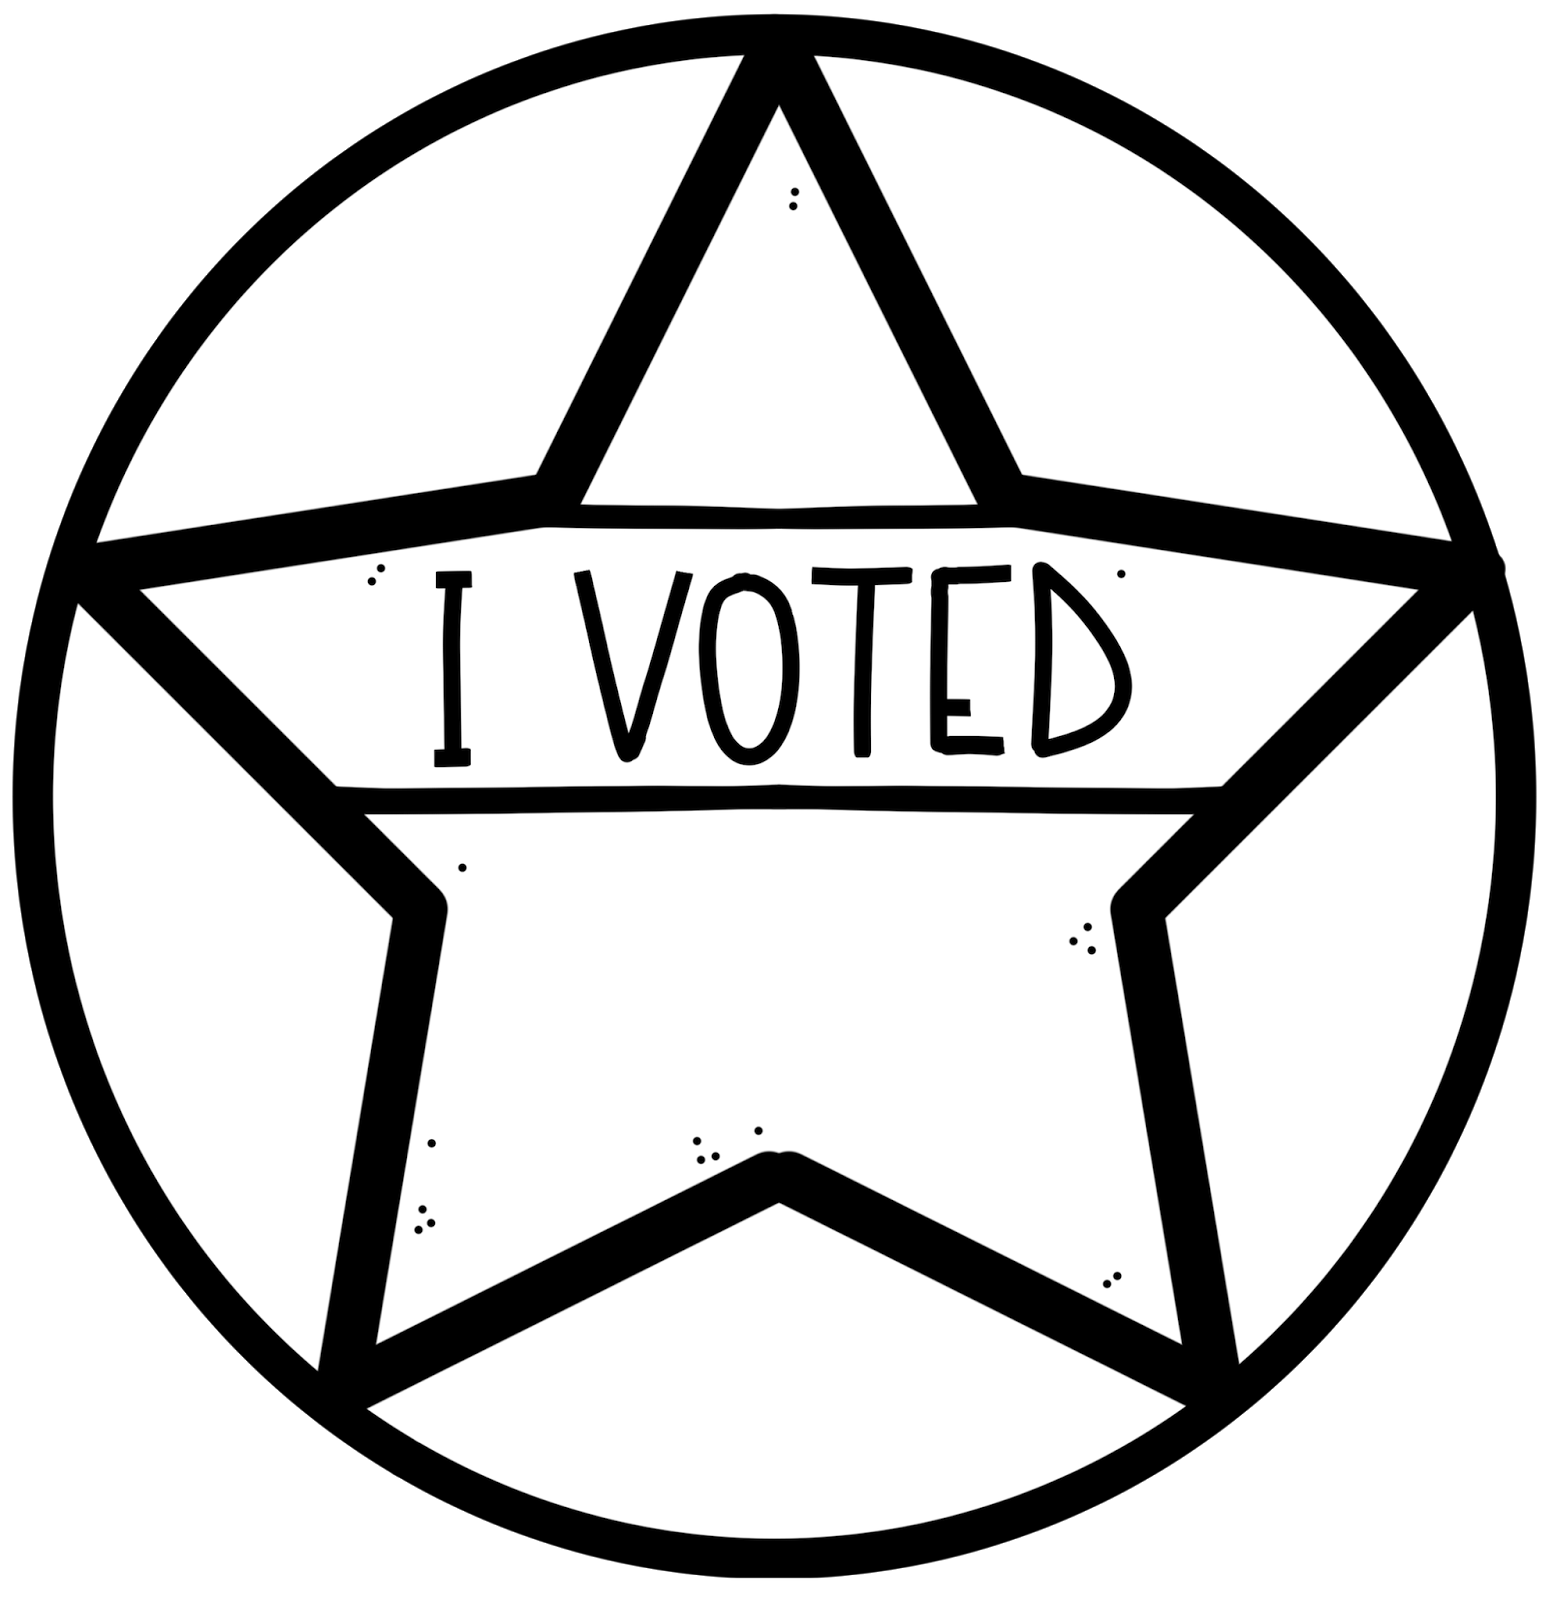 picture freeuse library Vote clipart black and white. Educlips design are you.